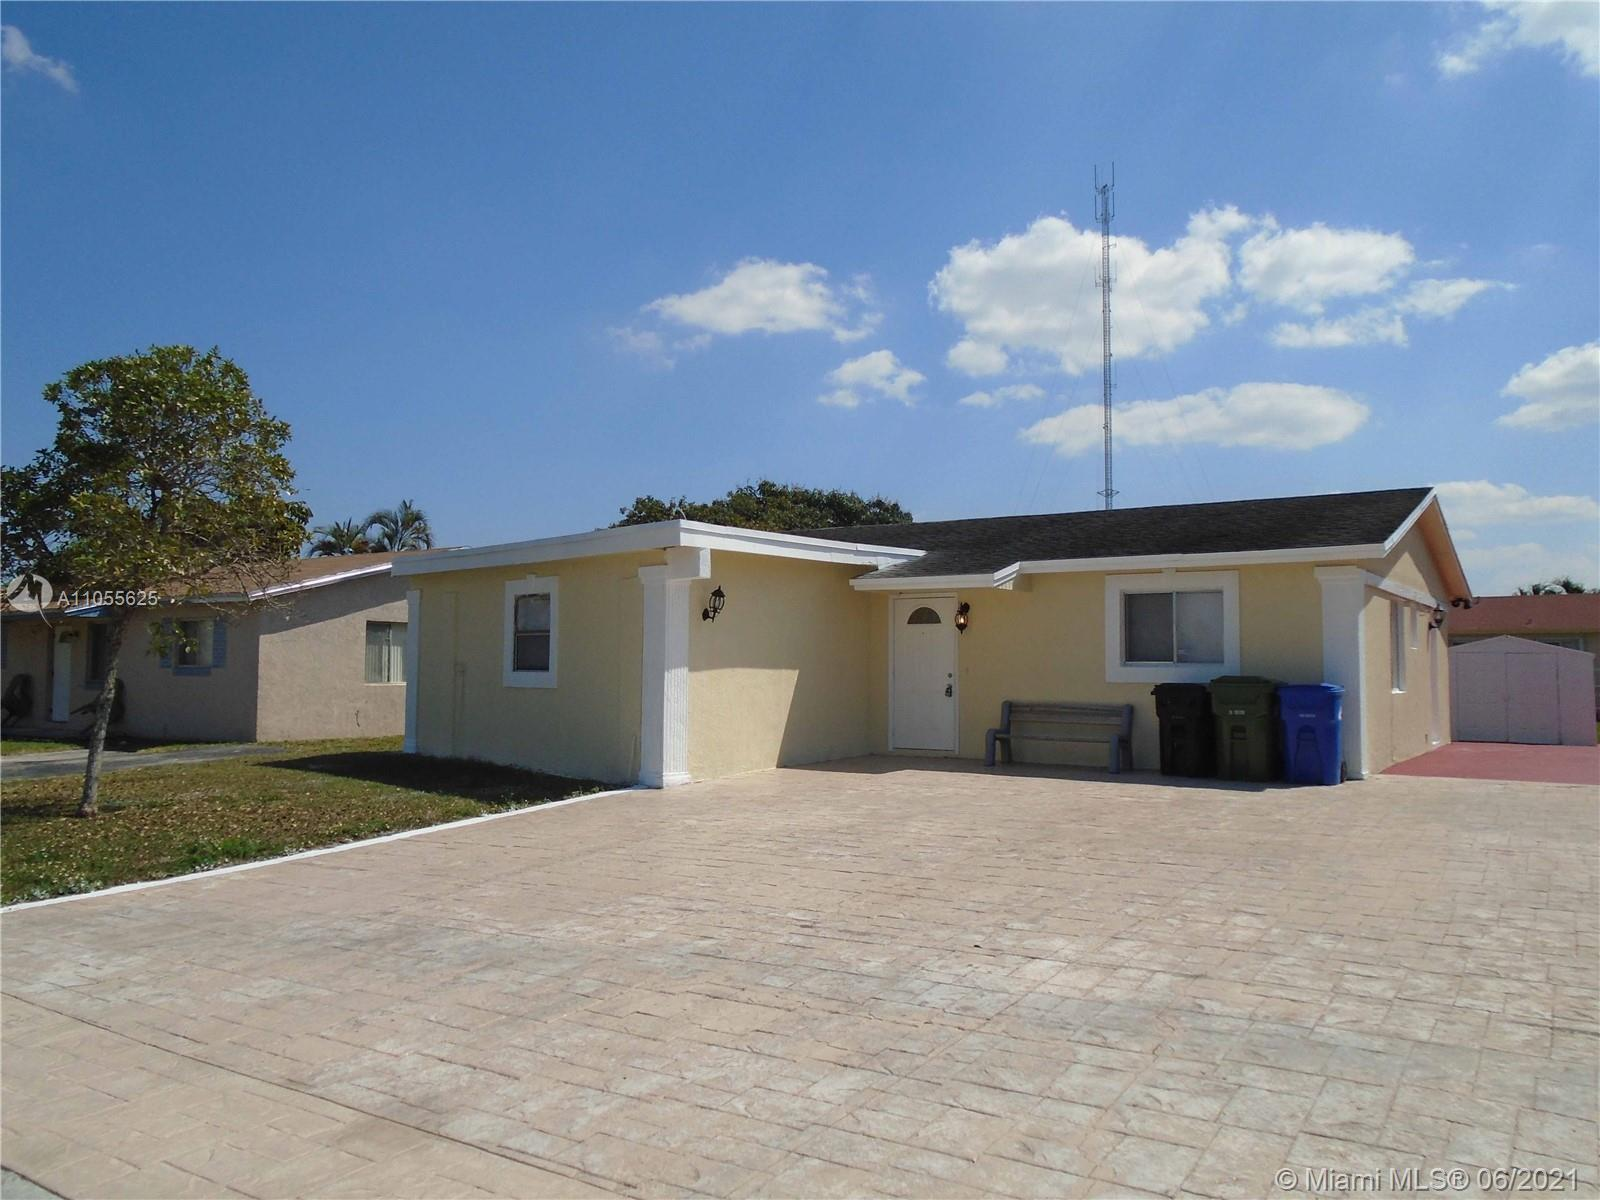 Charming home in Fort Lauderdale for sale! This 3 bedroom 2 bathrooms home is perfect as in investme